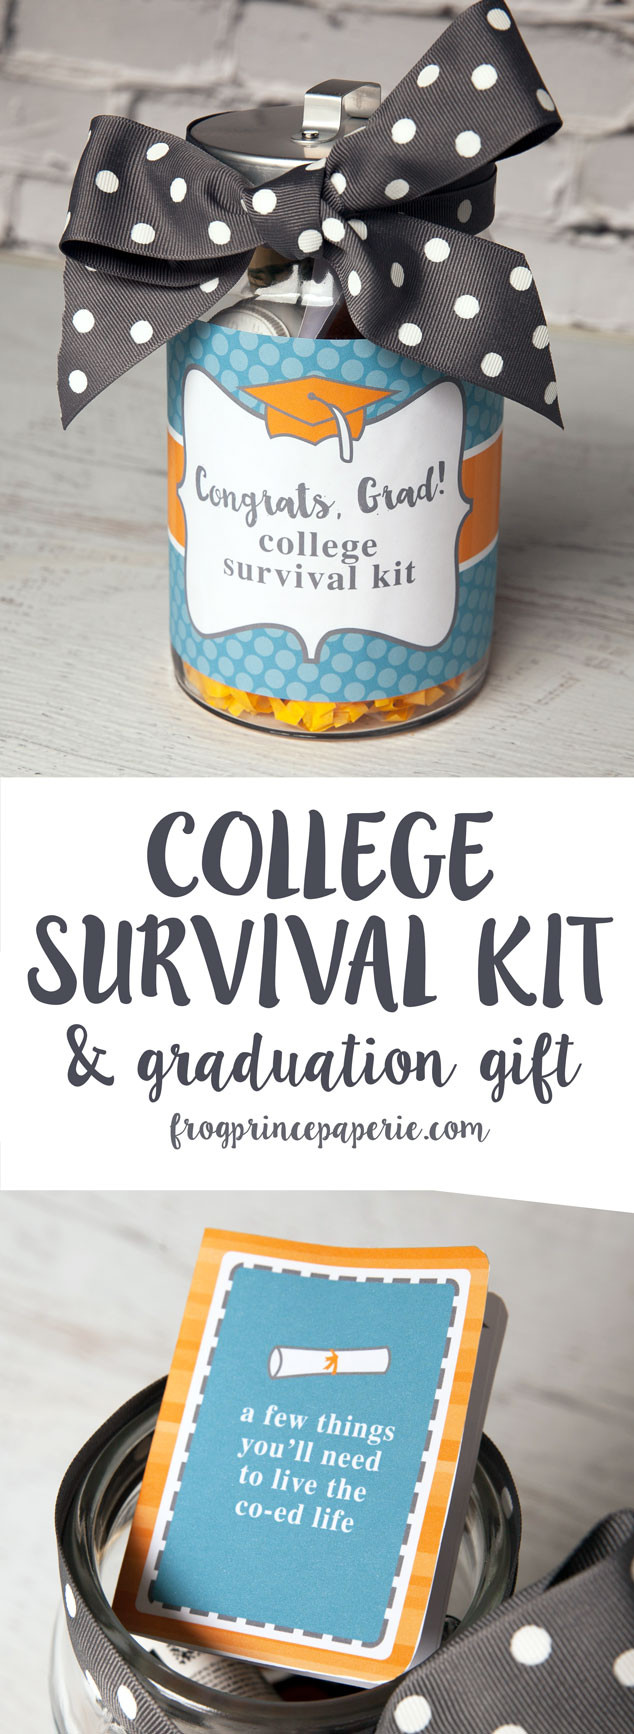 Ideas For A High School Graduation Gift  College Survival Kit DIY Graduation Gift Frog Prince Paperie